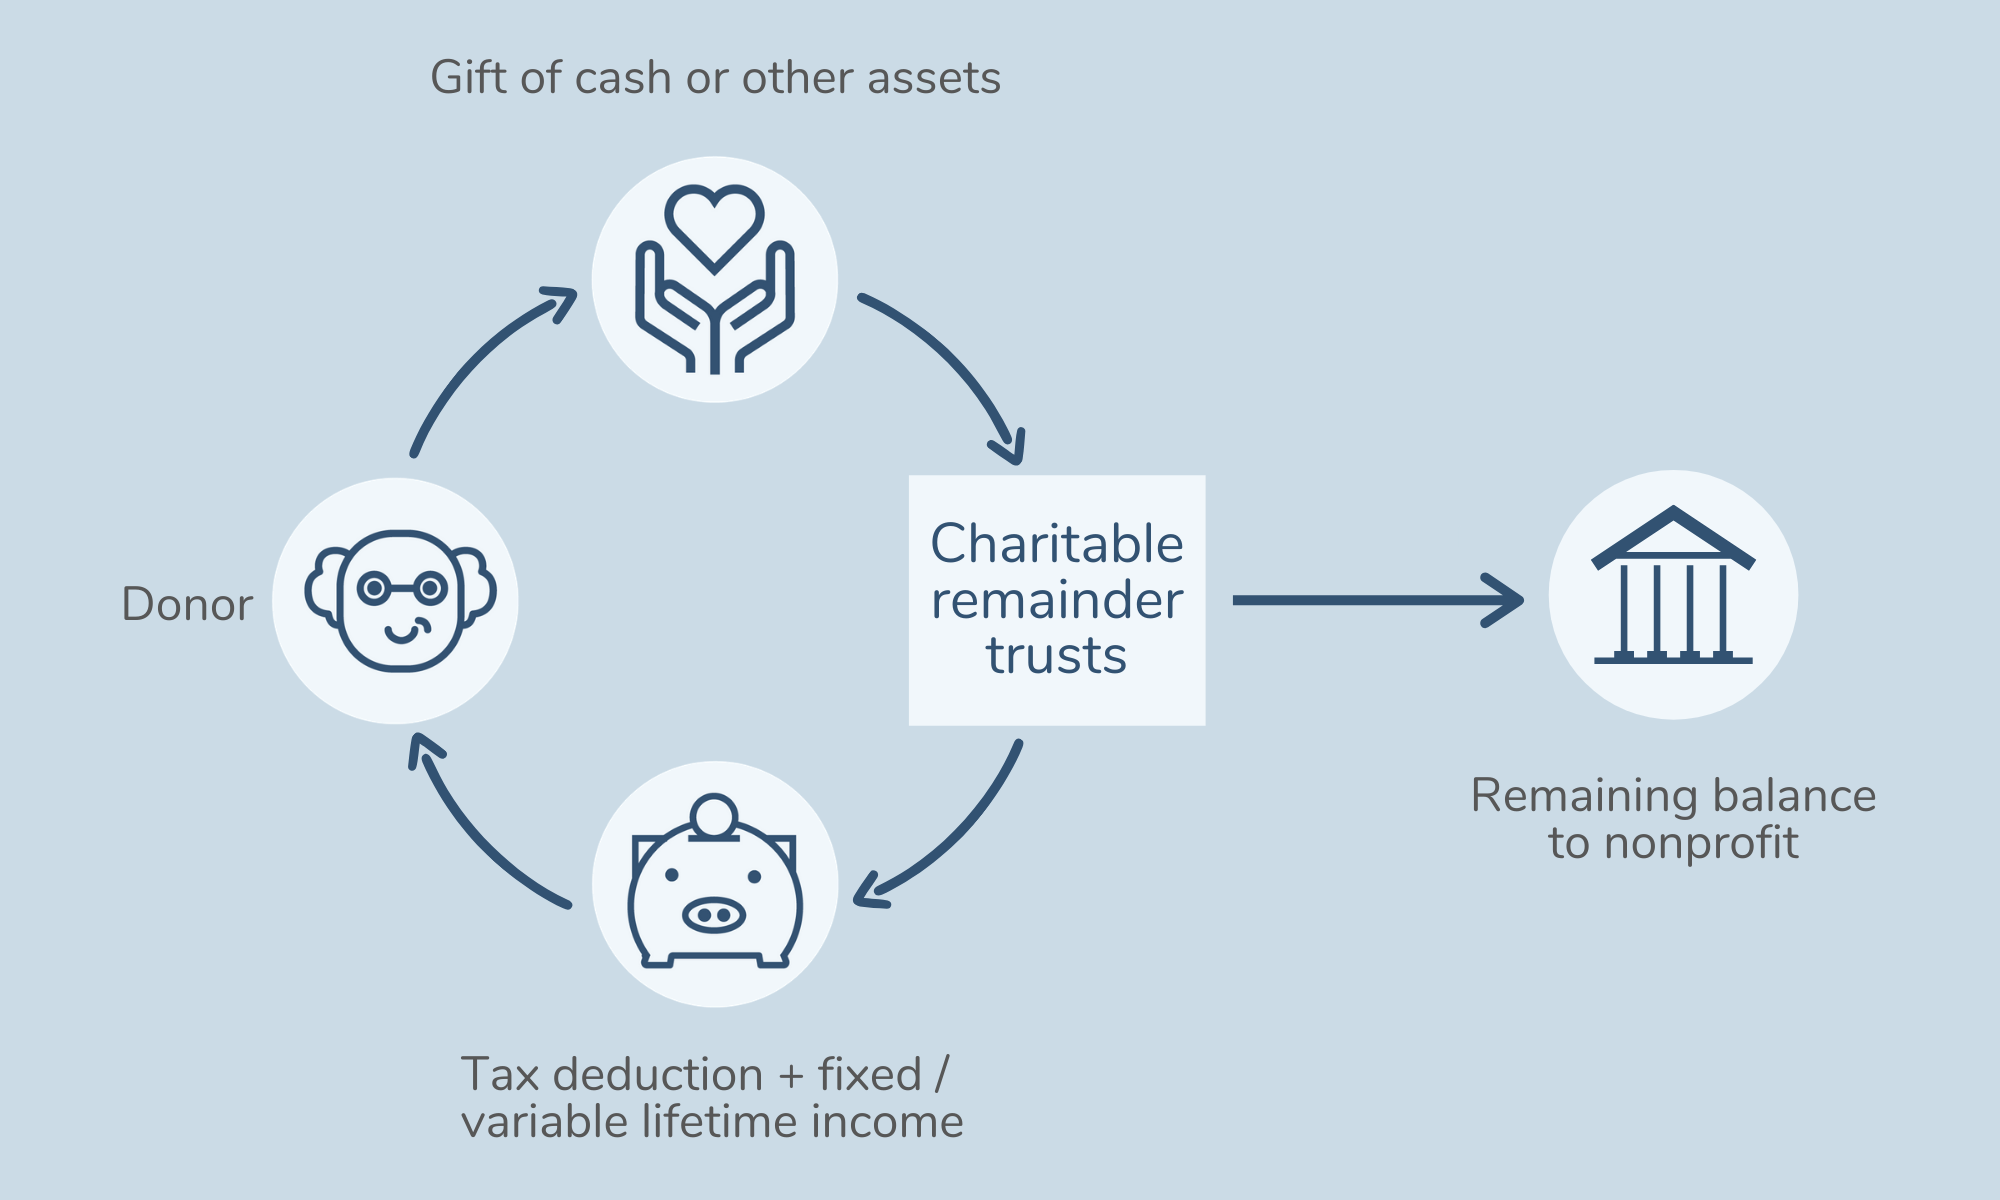 charitable remainder trusts cycle